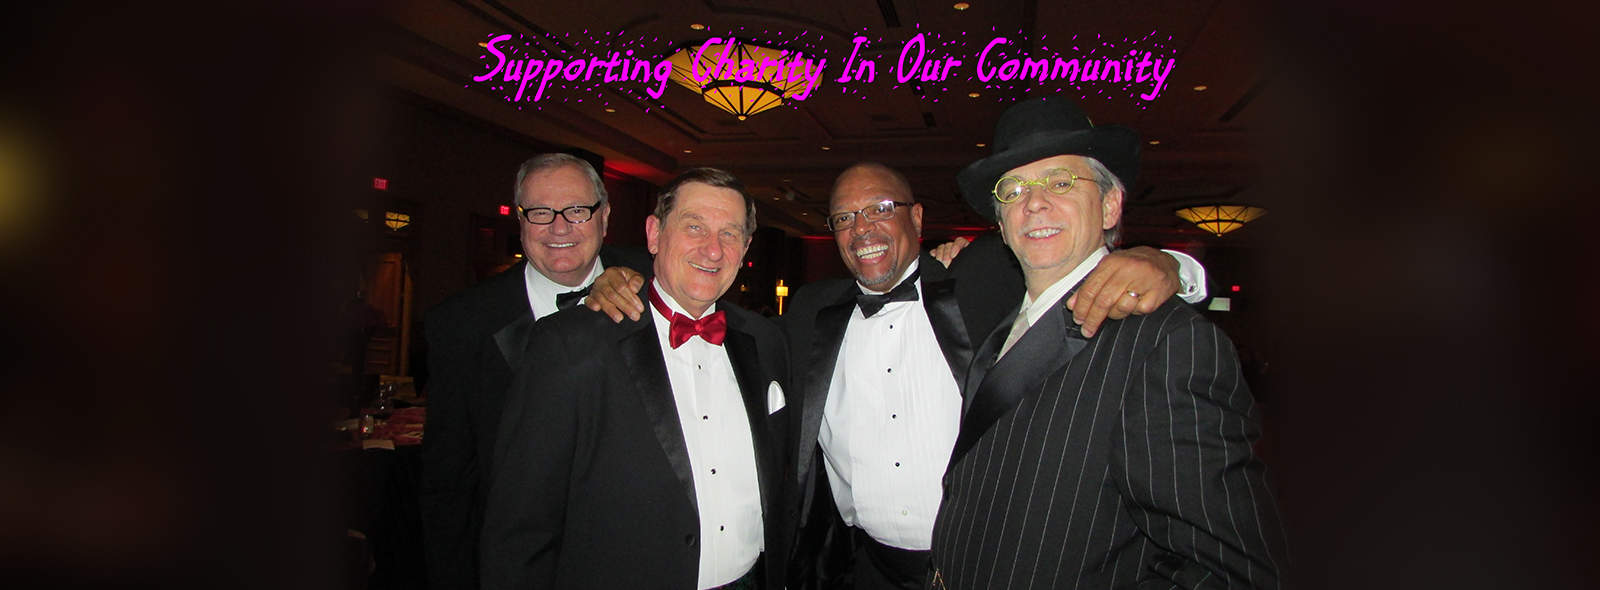 Supporting Charity in Frisco Community